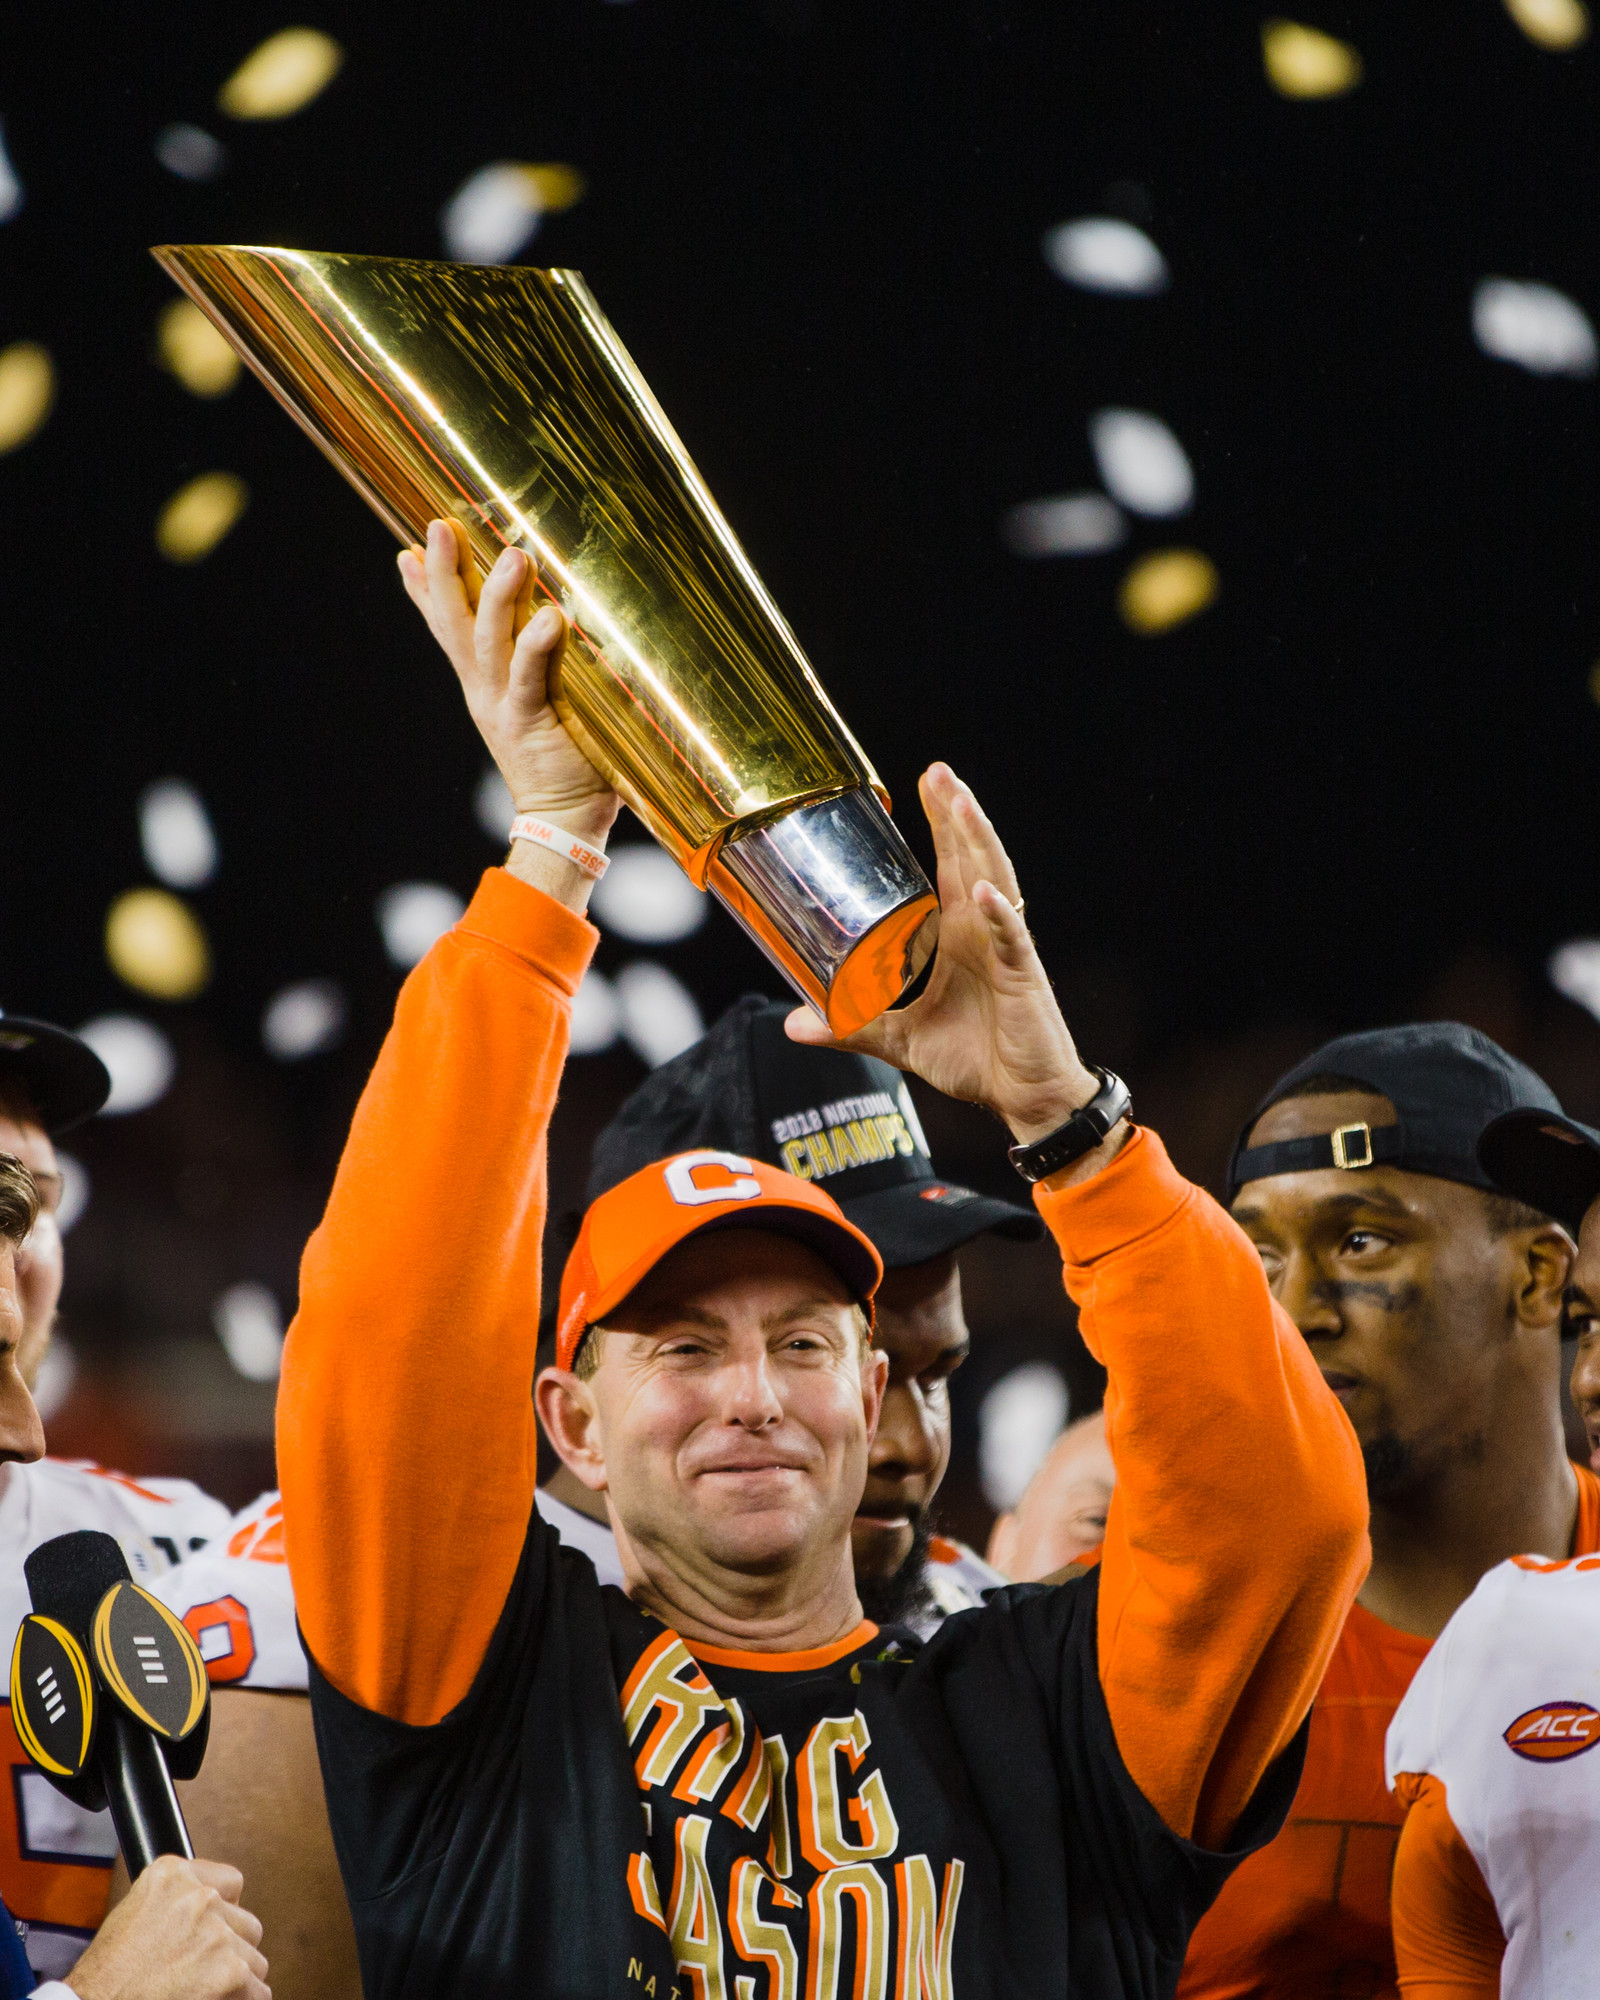 Clemson head coach Dabo Swinney hoists the trophy after the Tigers routed Alabama 44-16 to win the 2019 CFP National Championship game at Levi's Stadium in Santa Clara, California, on Monday, Jan. 7.